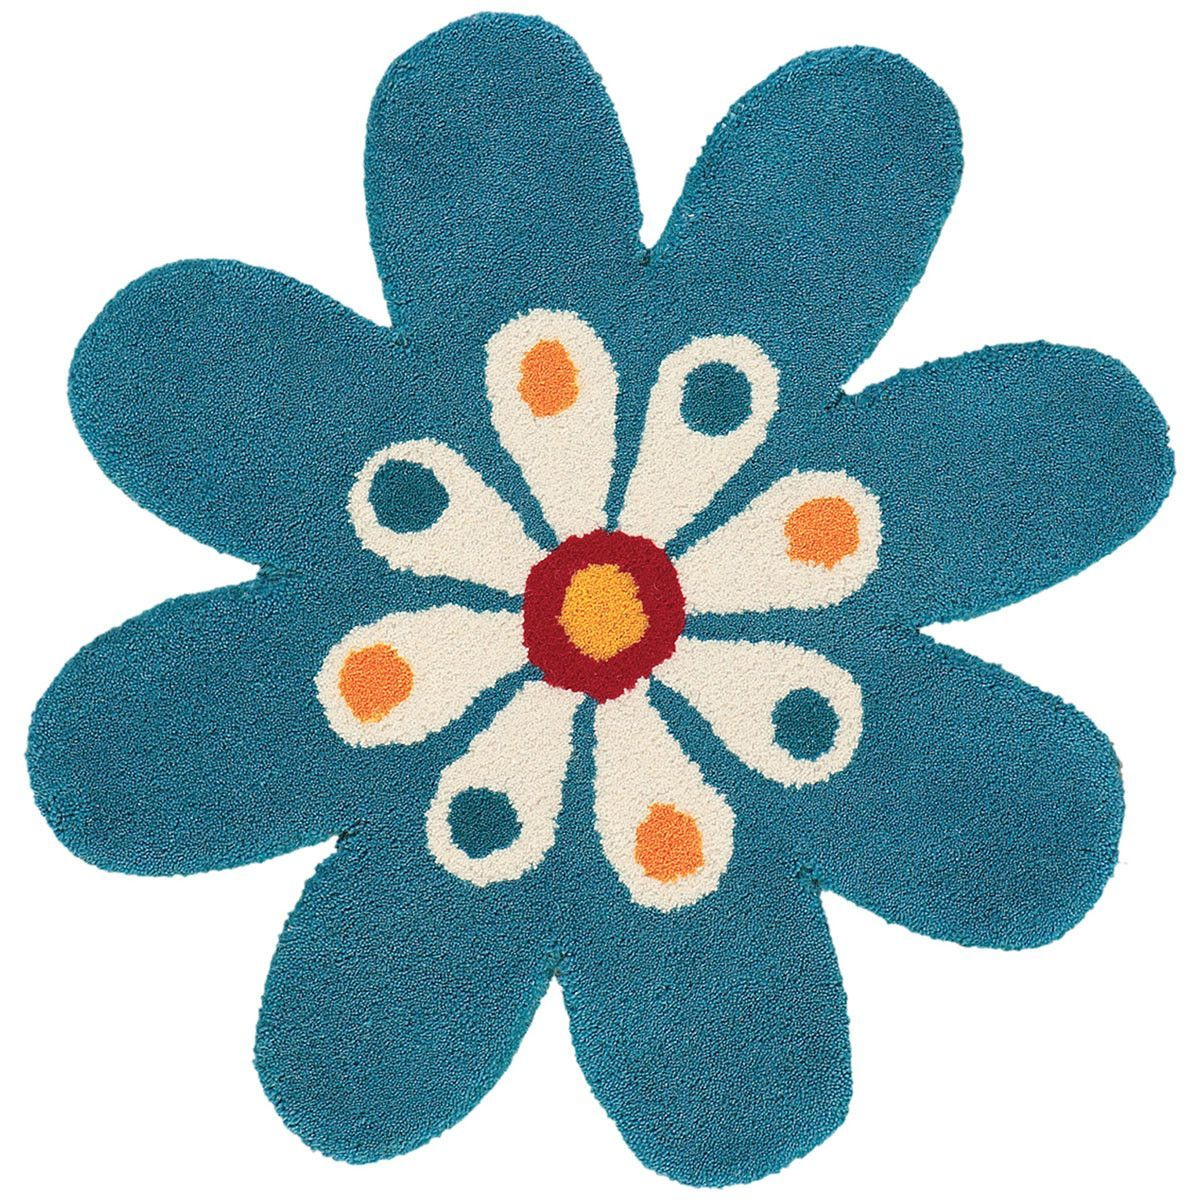 Dynamic Rugs Fantasia Flower 2' x 2' Area Rug